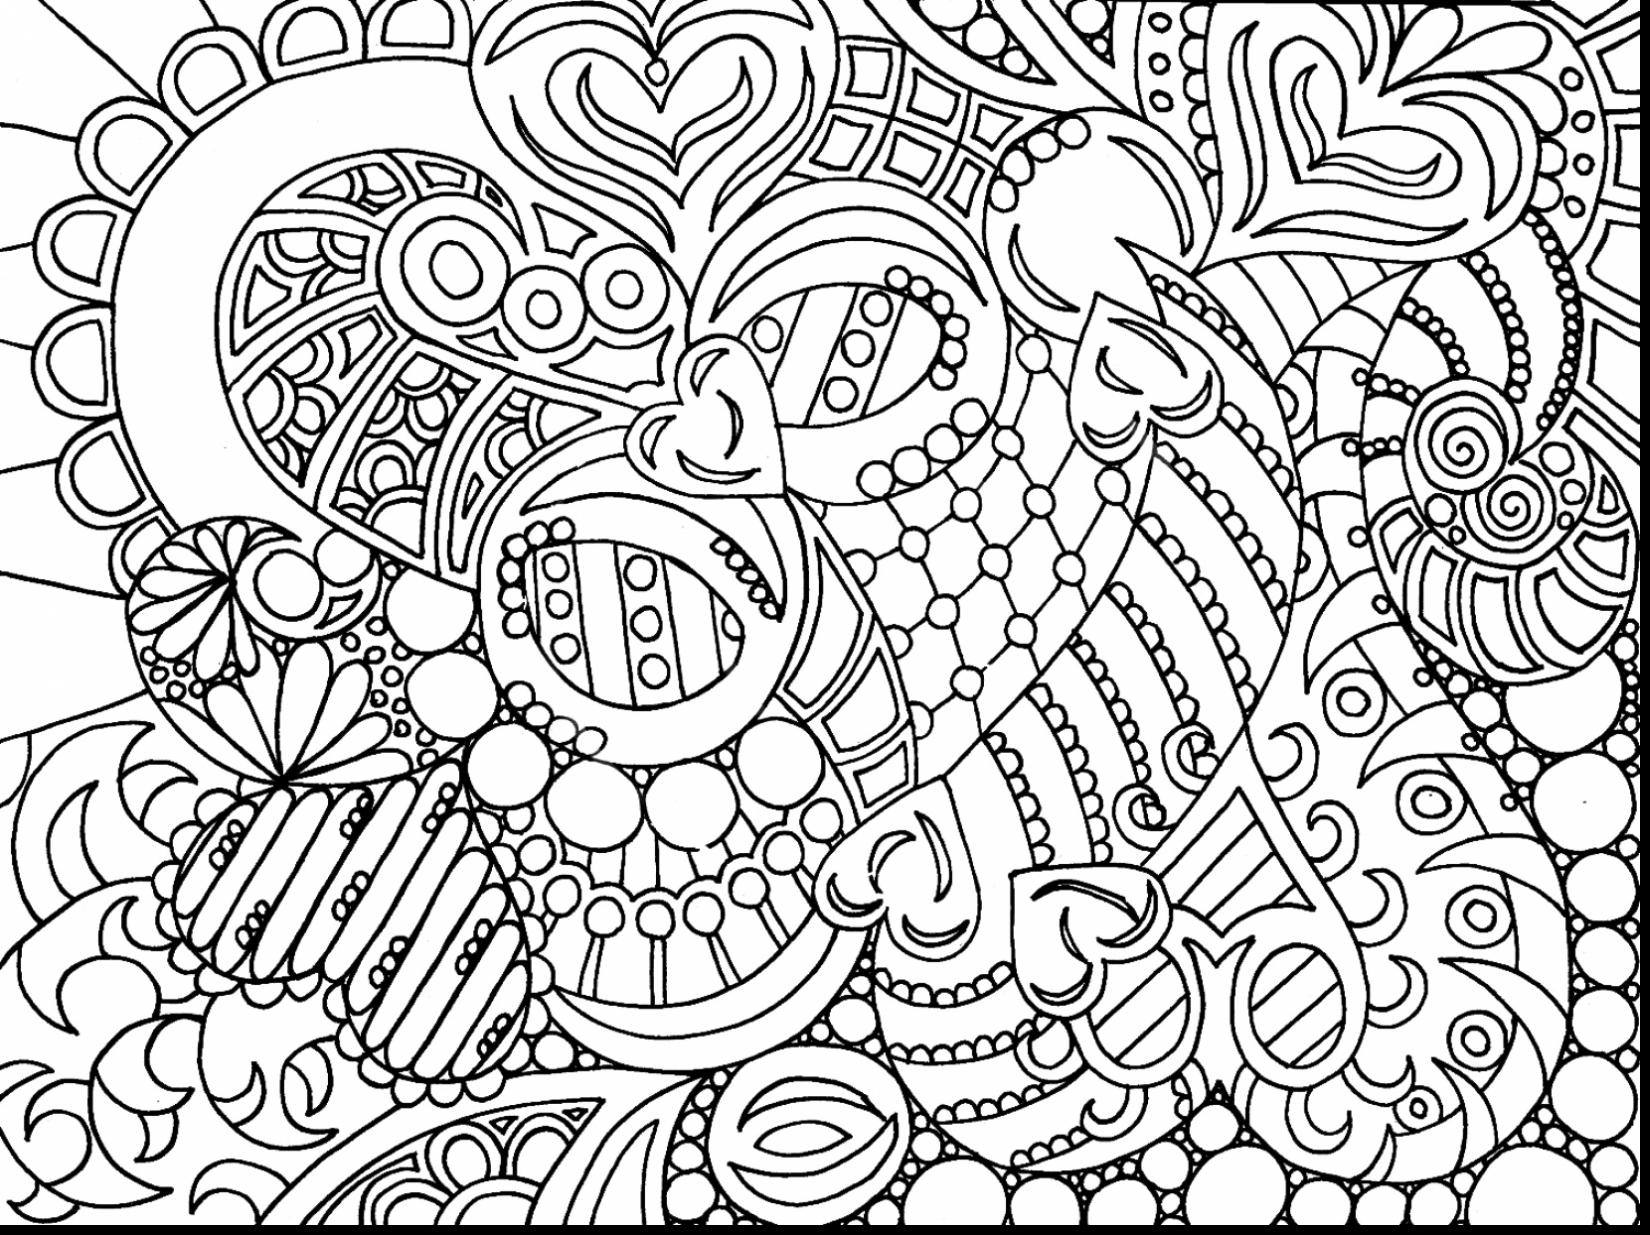 1650x1235 Breakthrough Abstract Coloring Pages For Teena